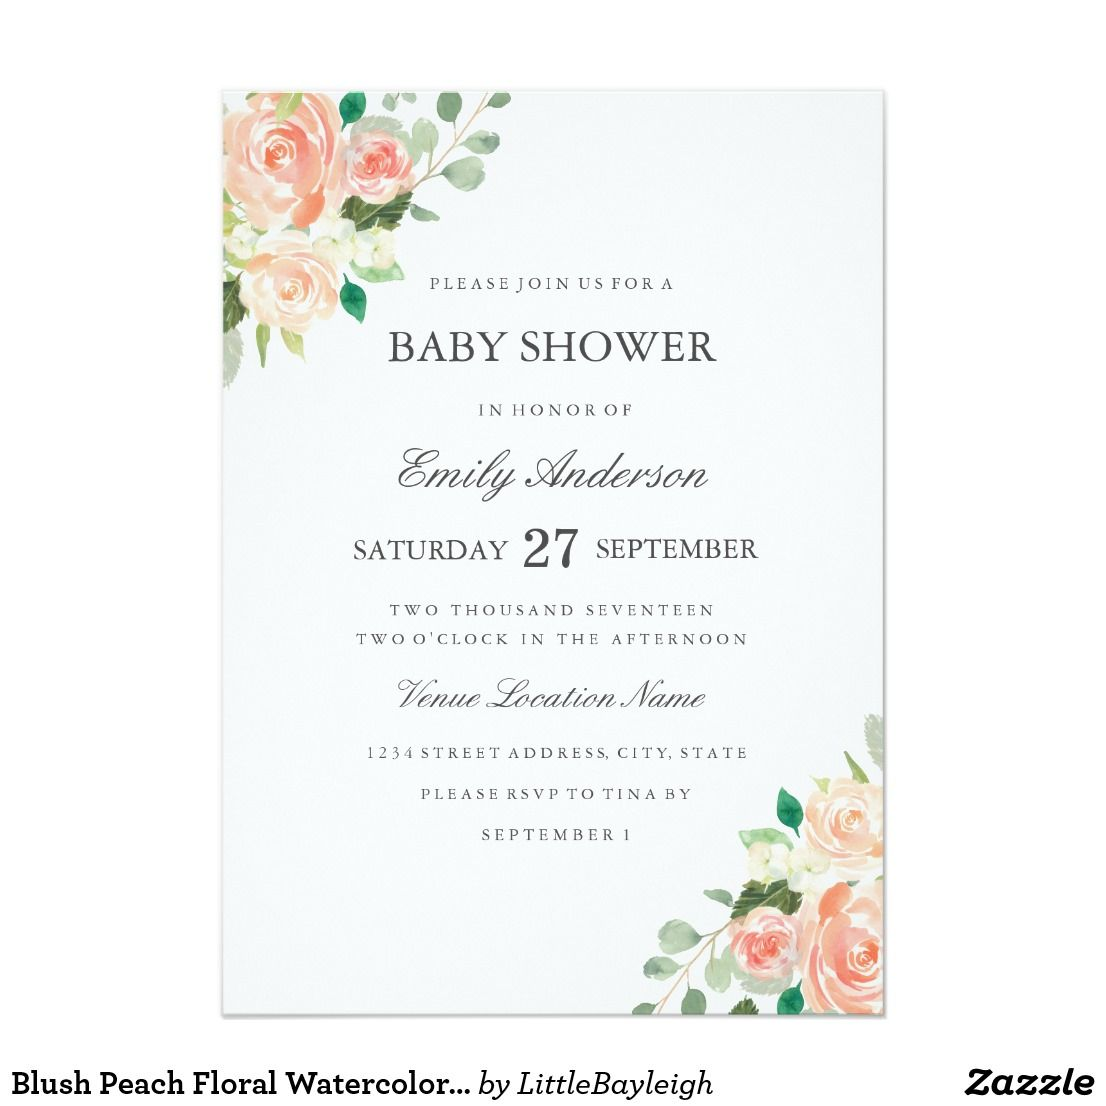 Blush Peach Floral Watercolor Baby Shower Invite